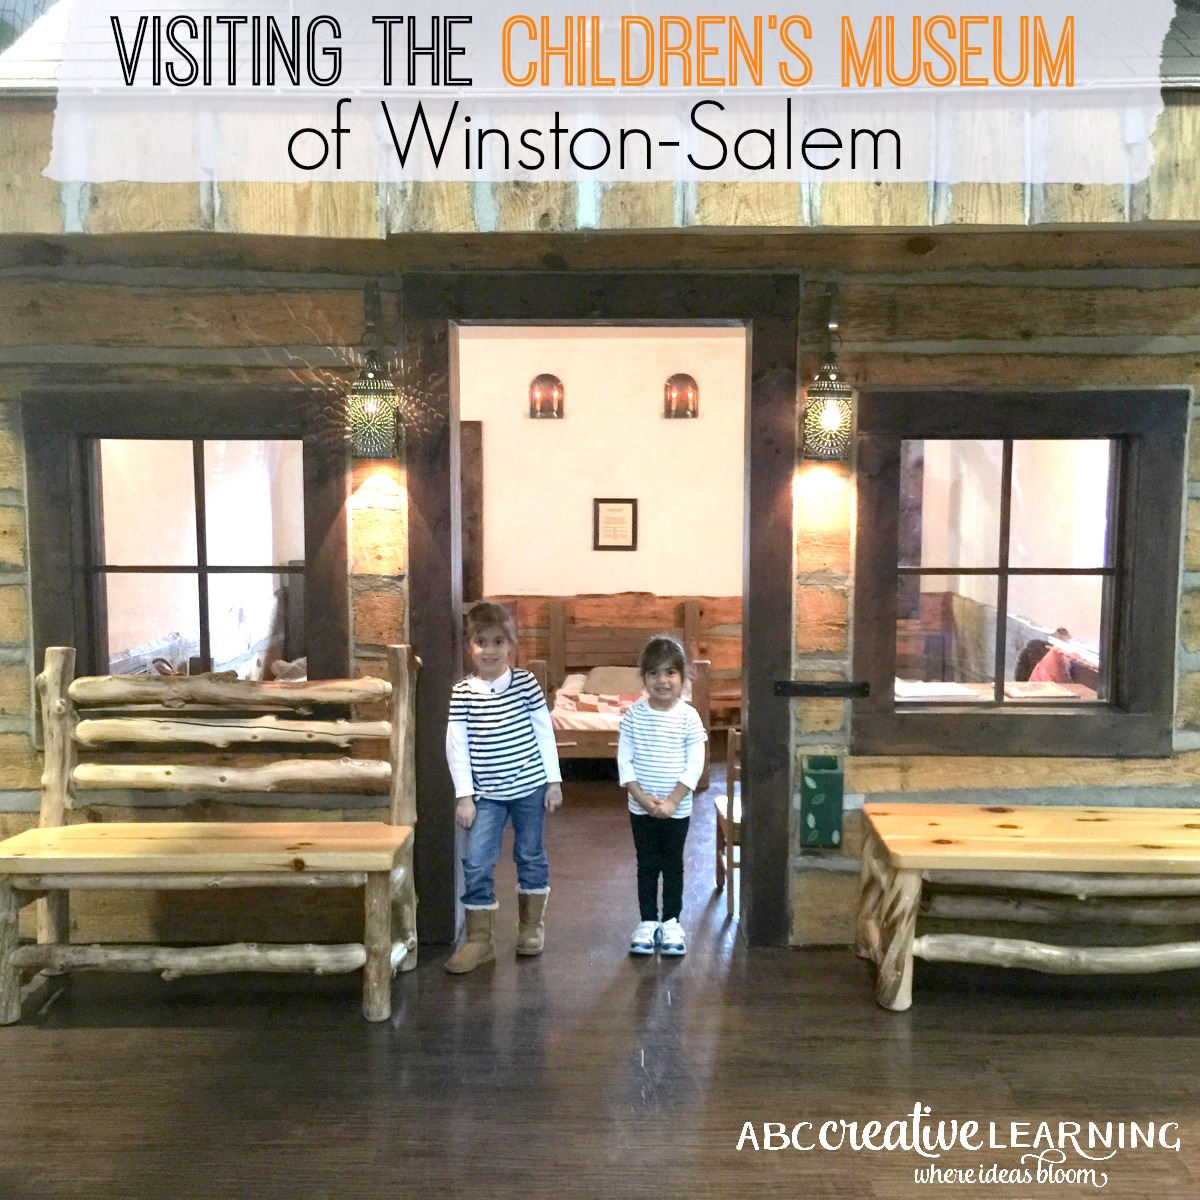 Visiting the Children's Museum of Winston-Salem